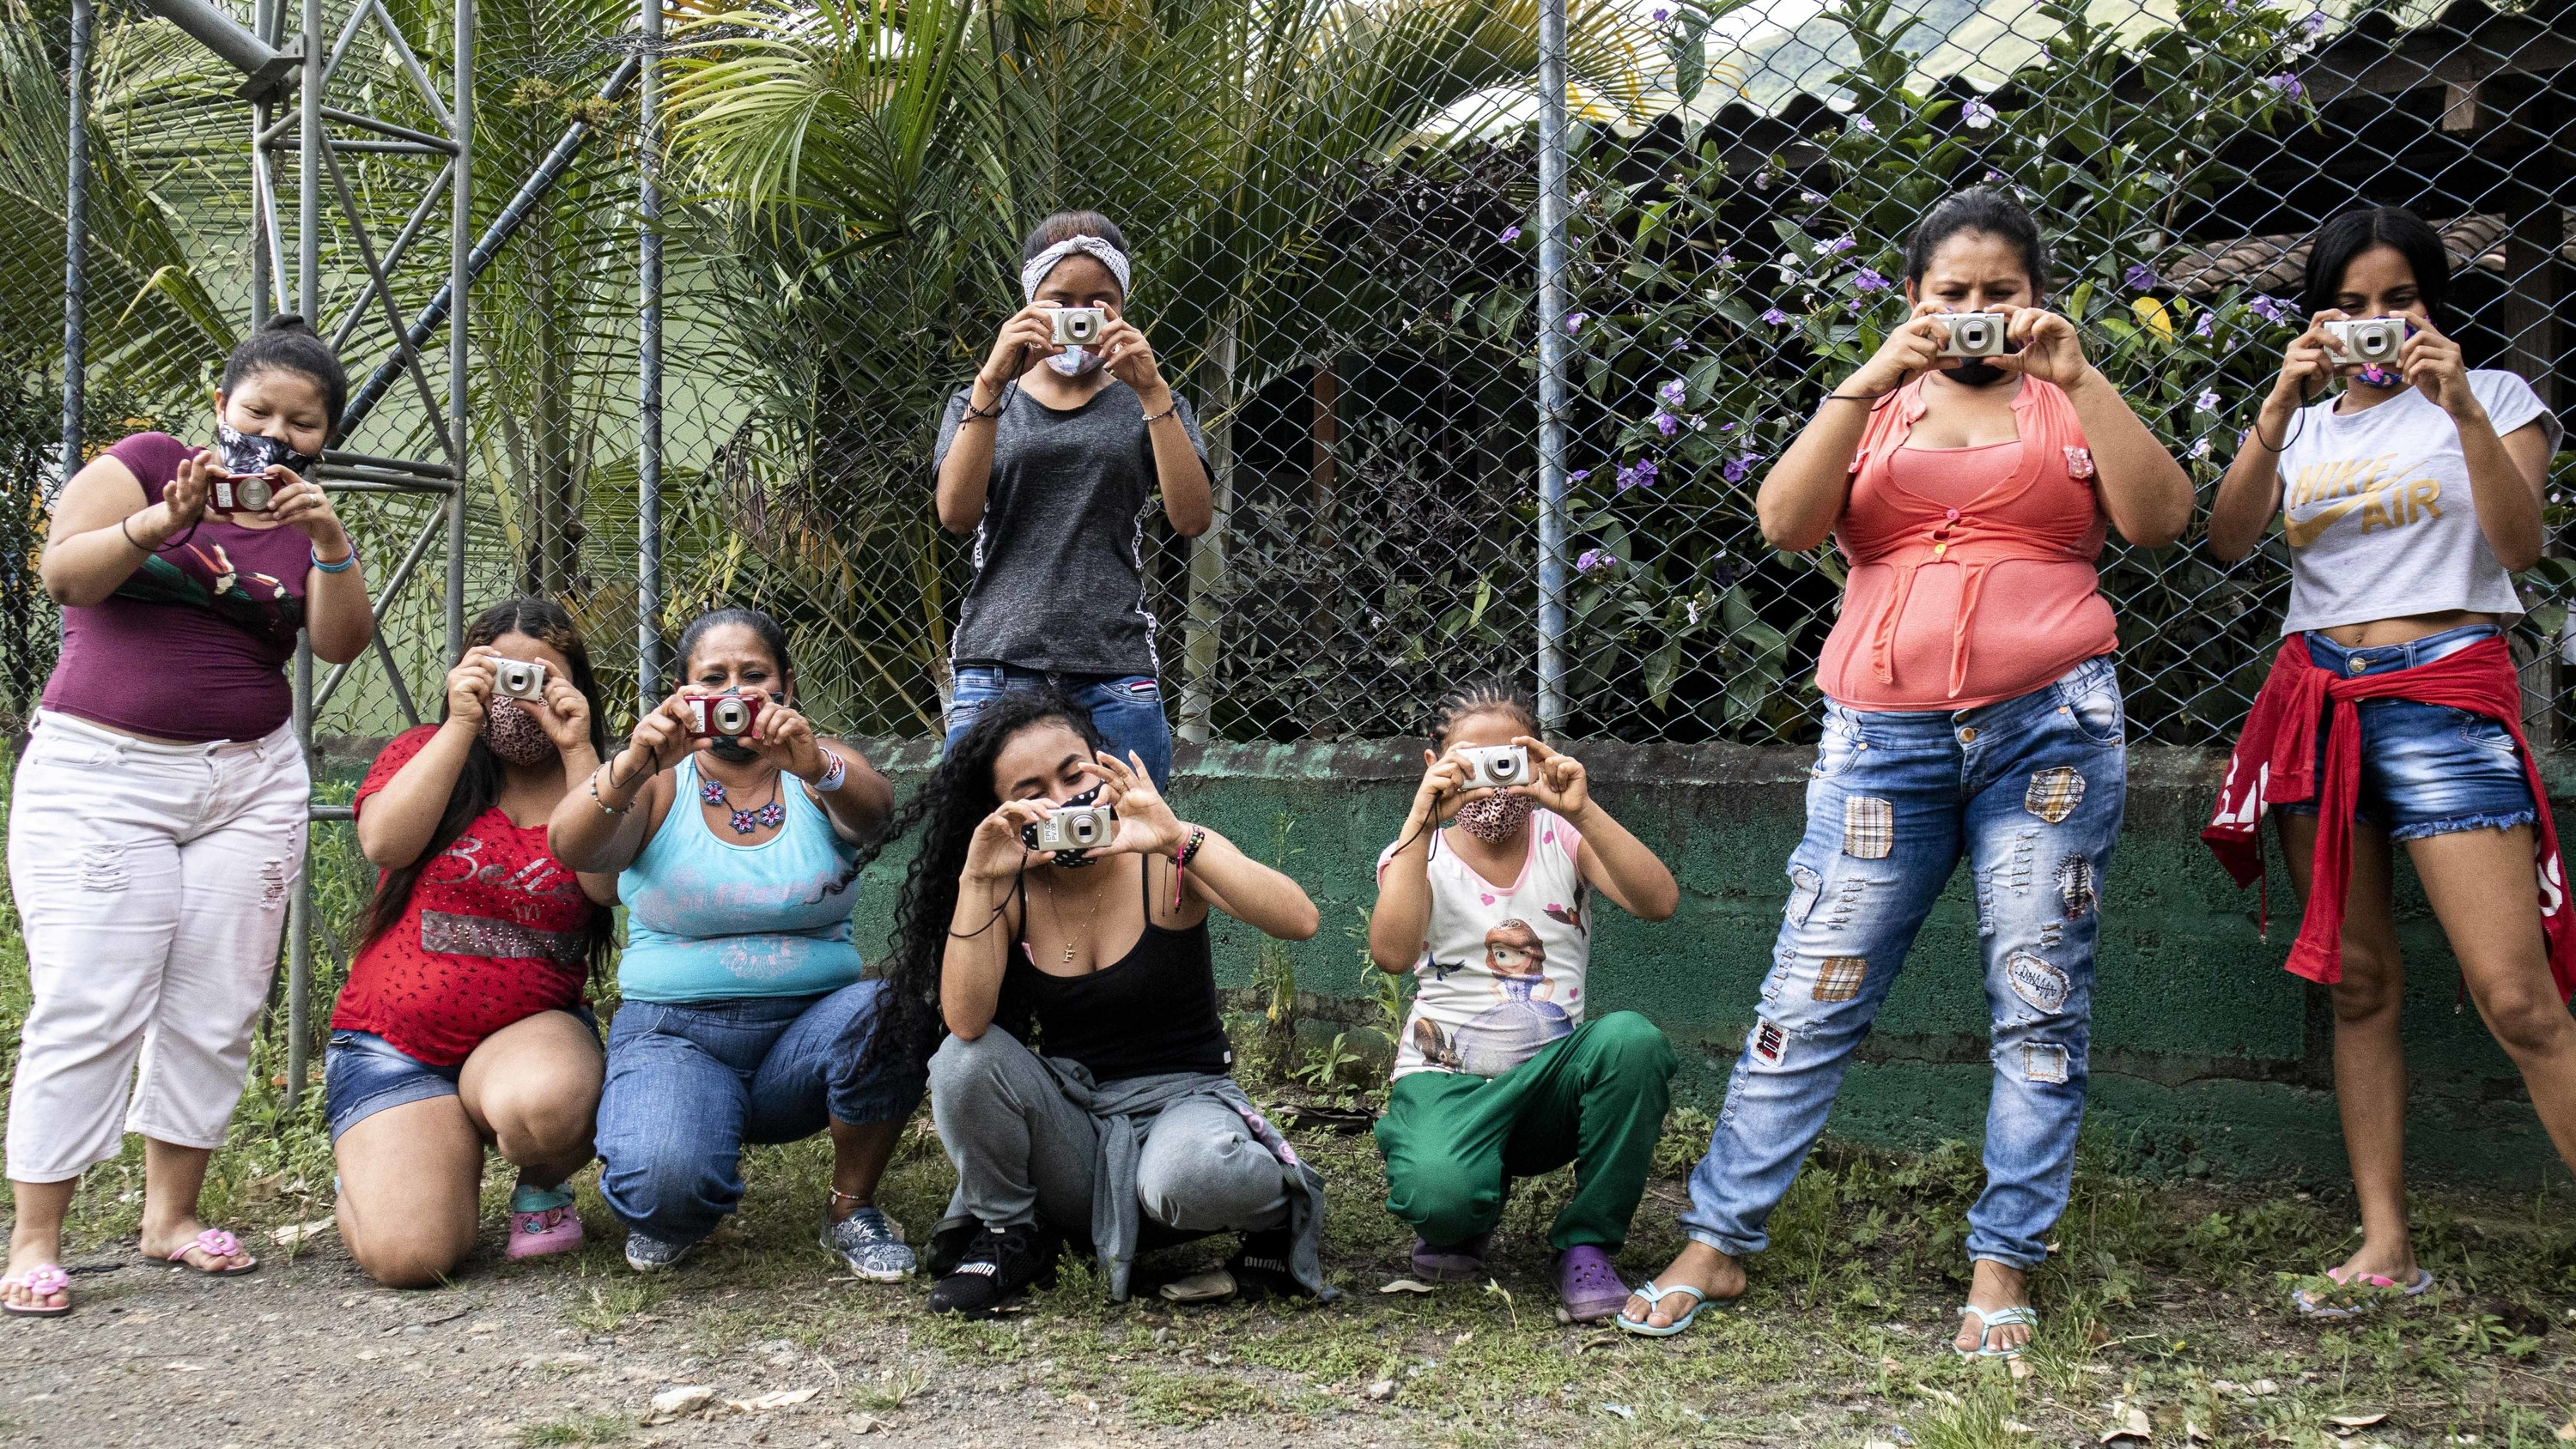 Eight women with cameras pointing them at the camera, wearing masks